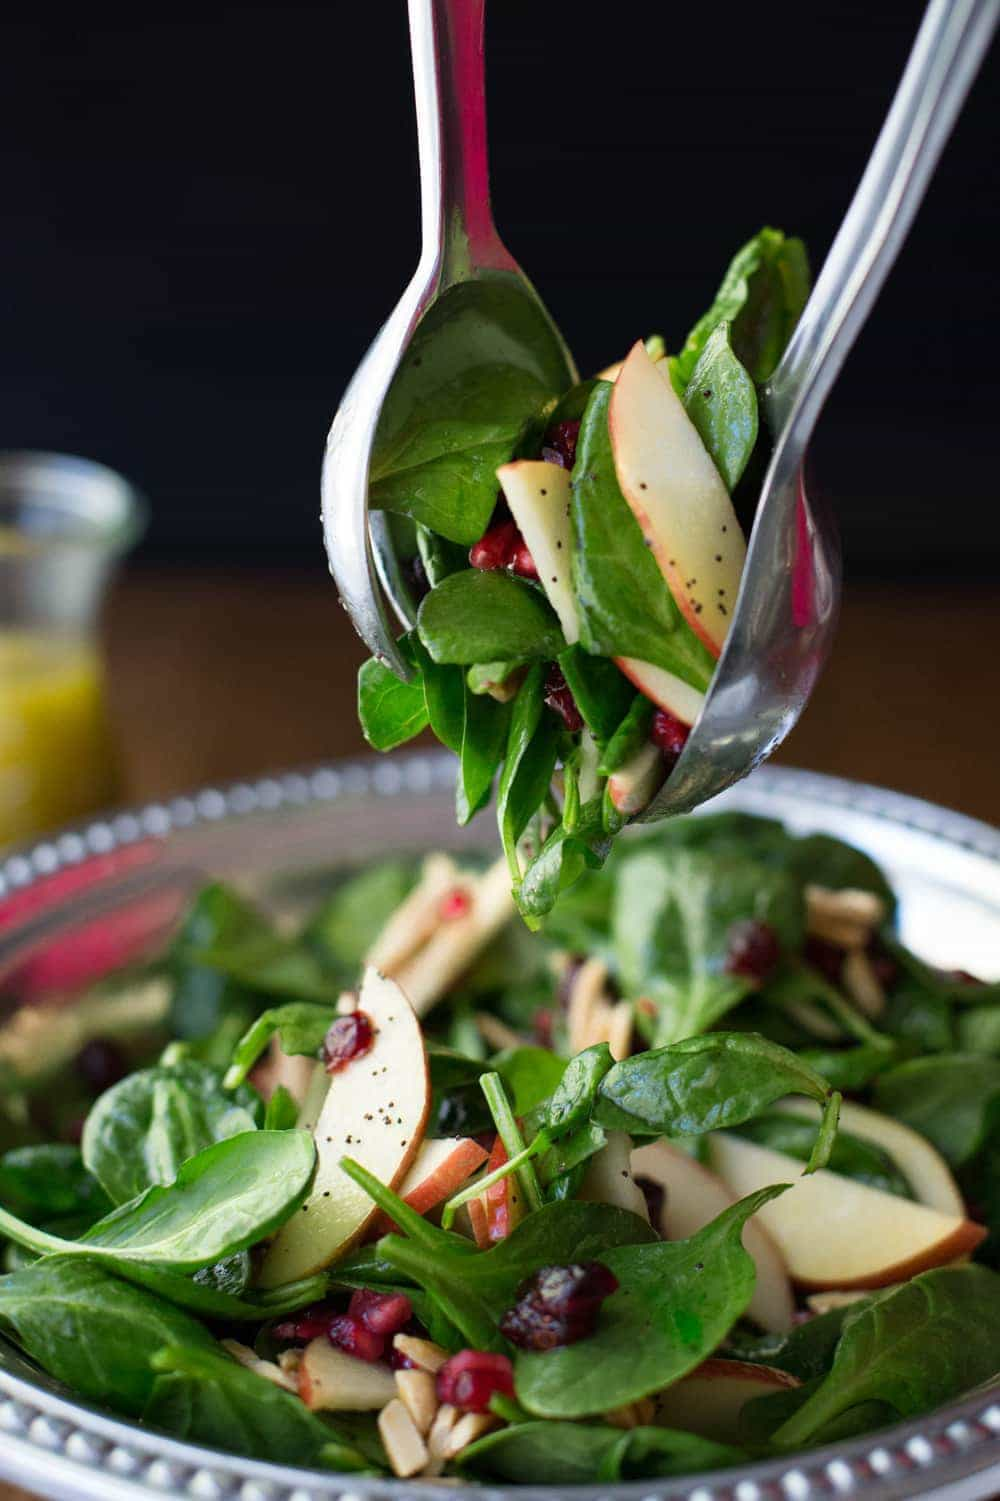 Photo of a pair of tongs lifting a serving of Apple Cranberry Spinach Salad with Honey Cider Dressing from a pewter salad serving dish.